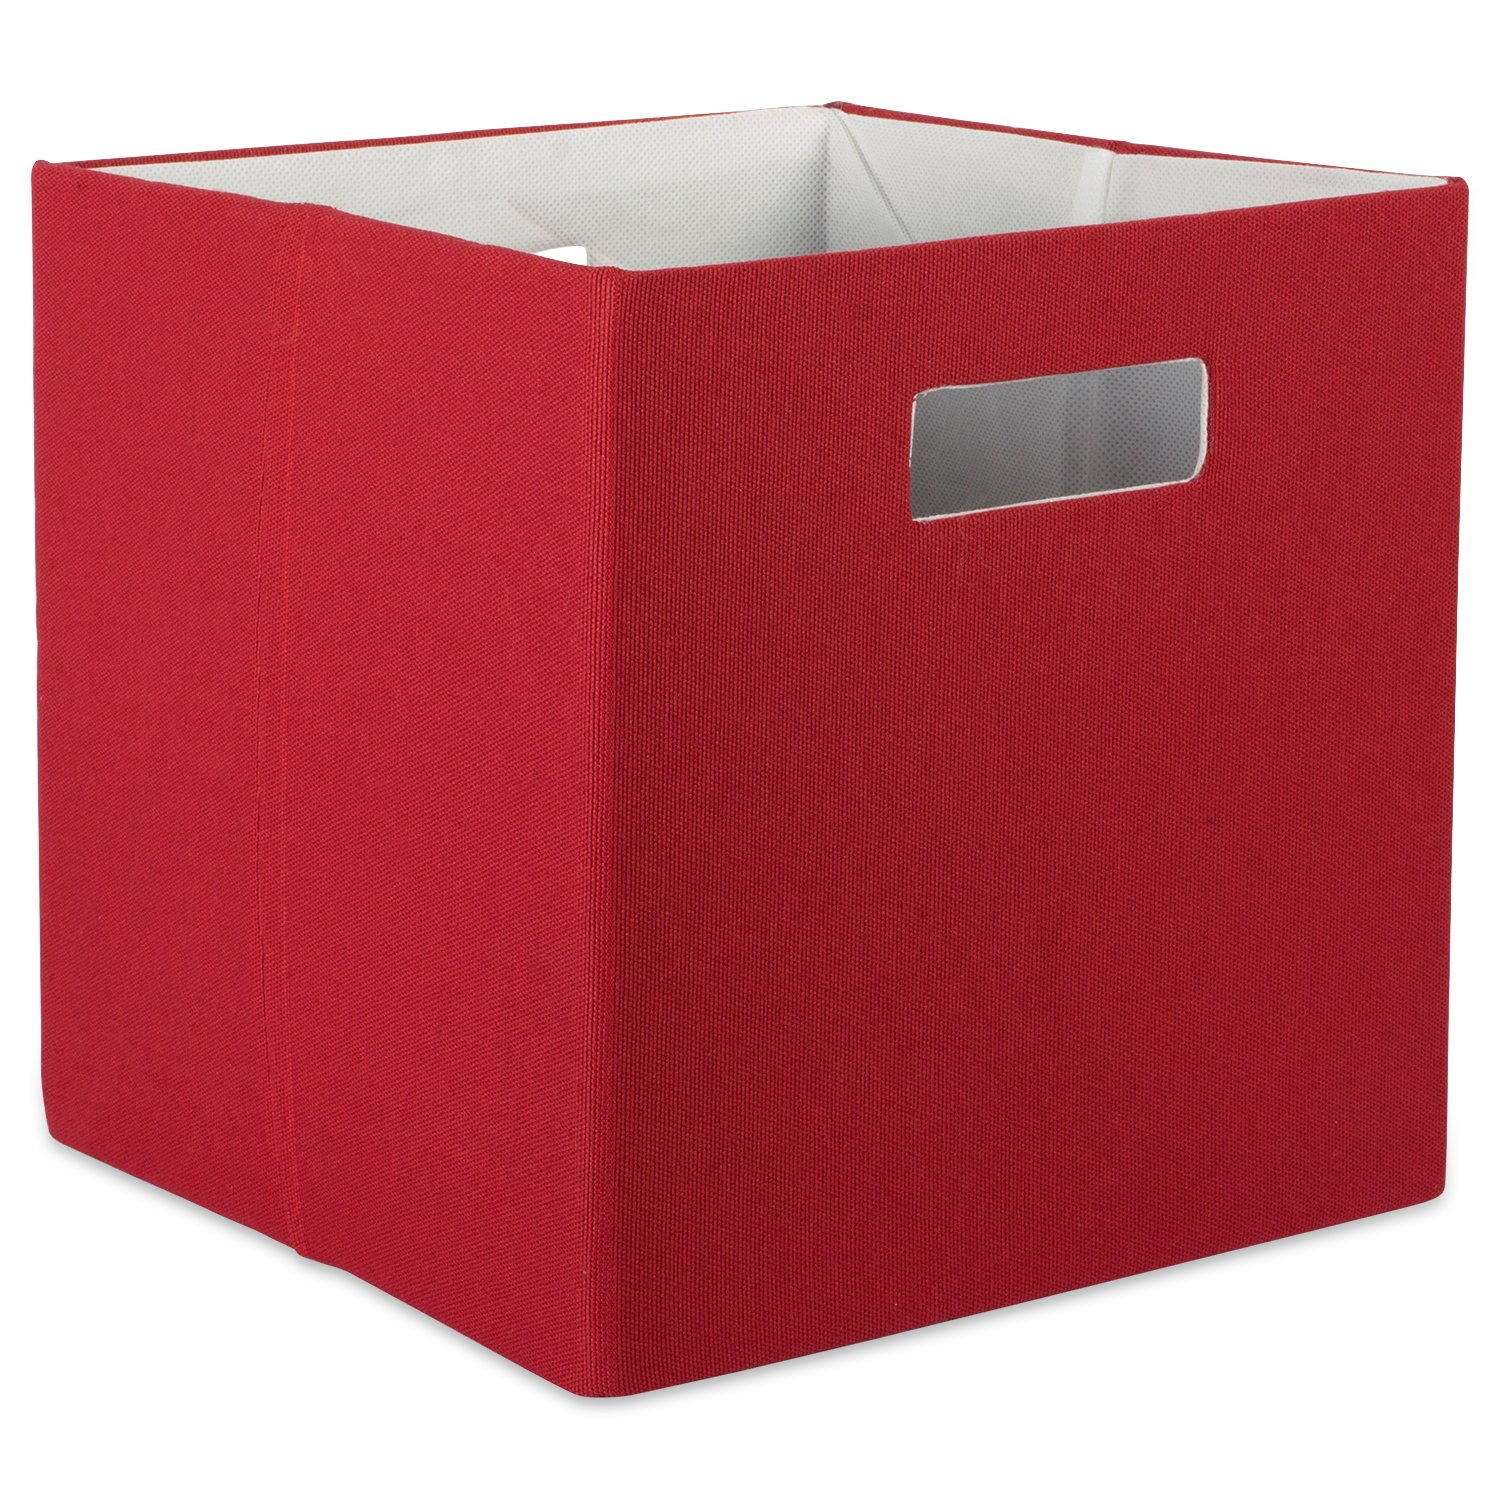 """DII Hard Sided Collapsible Fabric Storage Container for Nursery, Offices, & Home Organization, (11x11x11"""") - Solid Rust"""